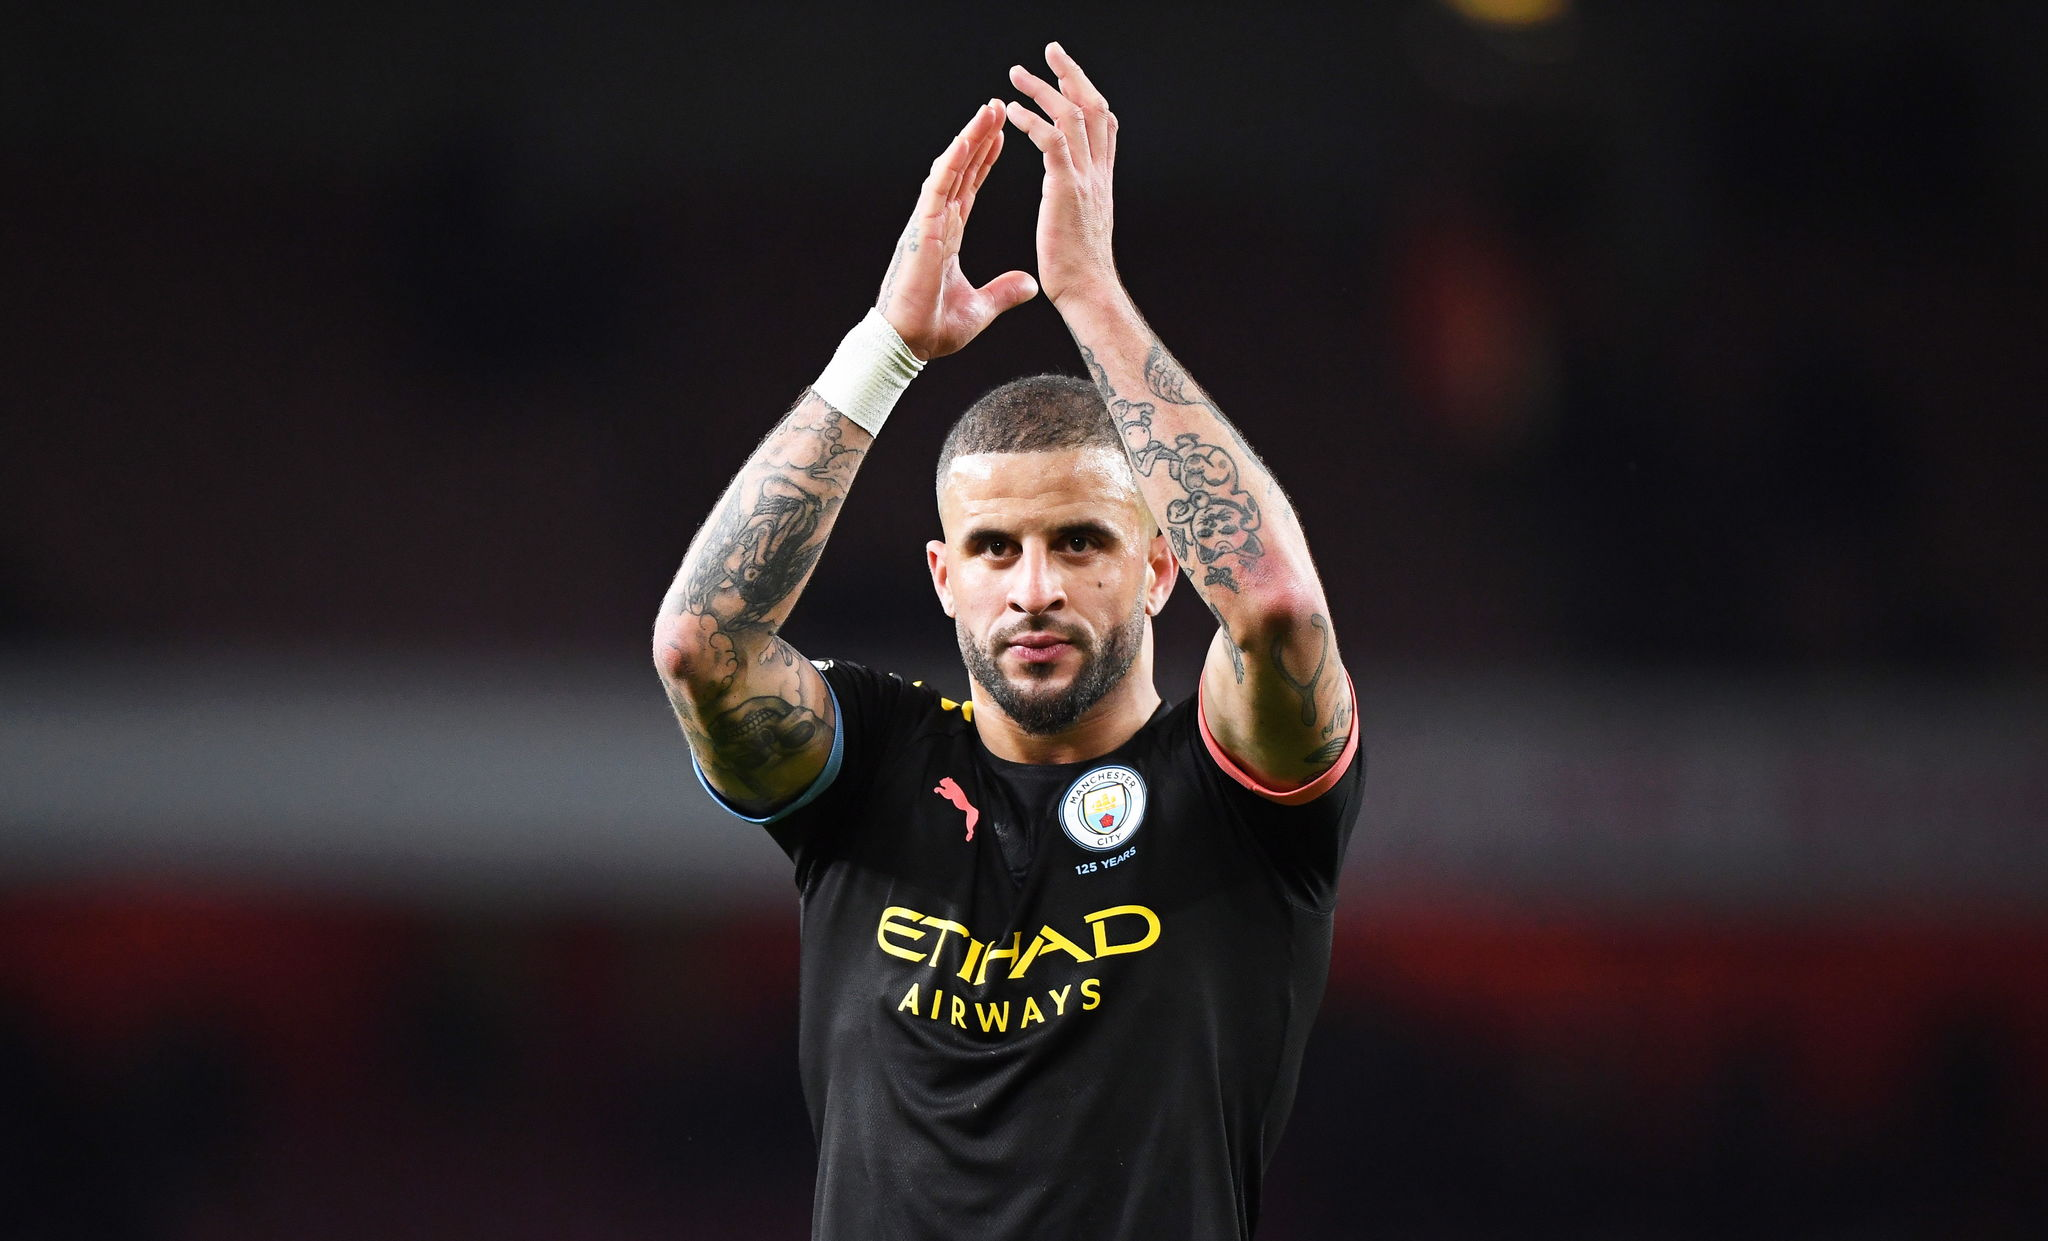 La fiesta sexual de Kyle Walker, defensa del City, en pleno confinamiento